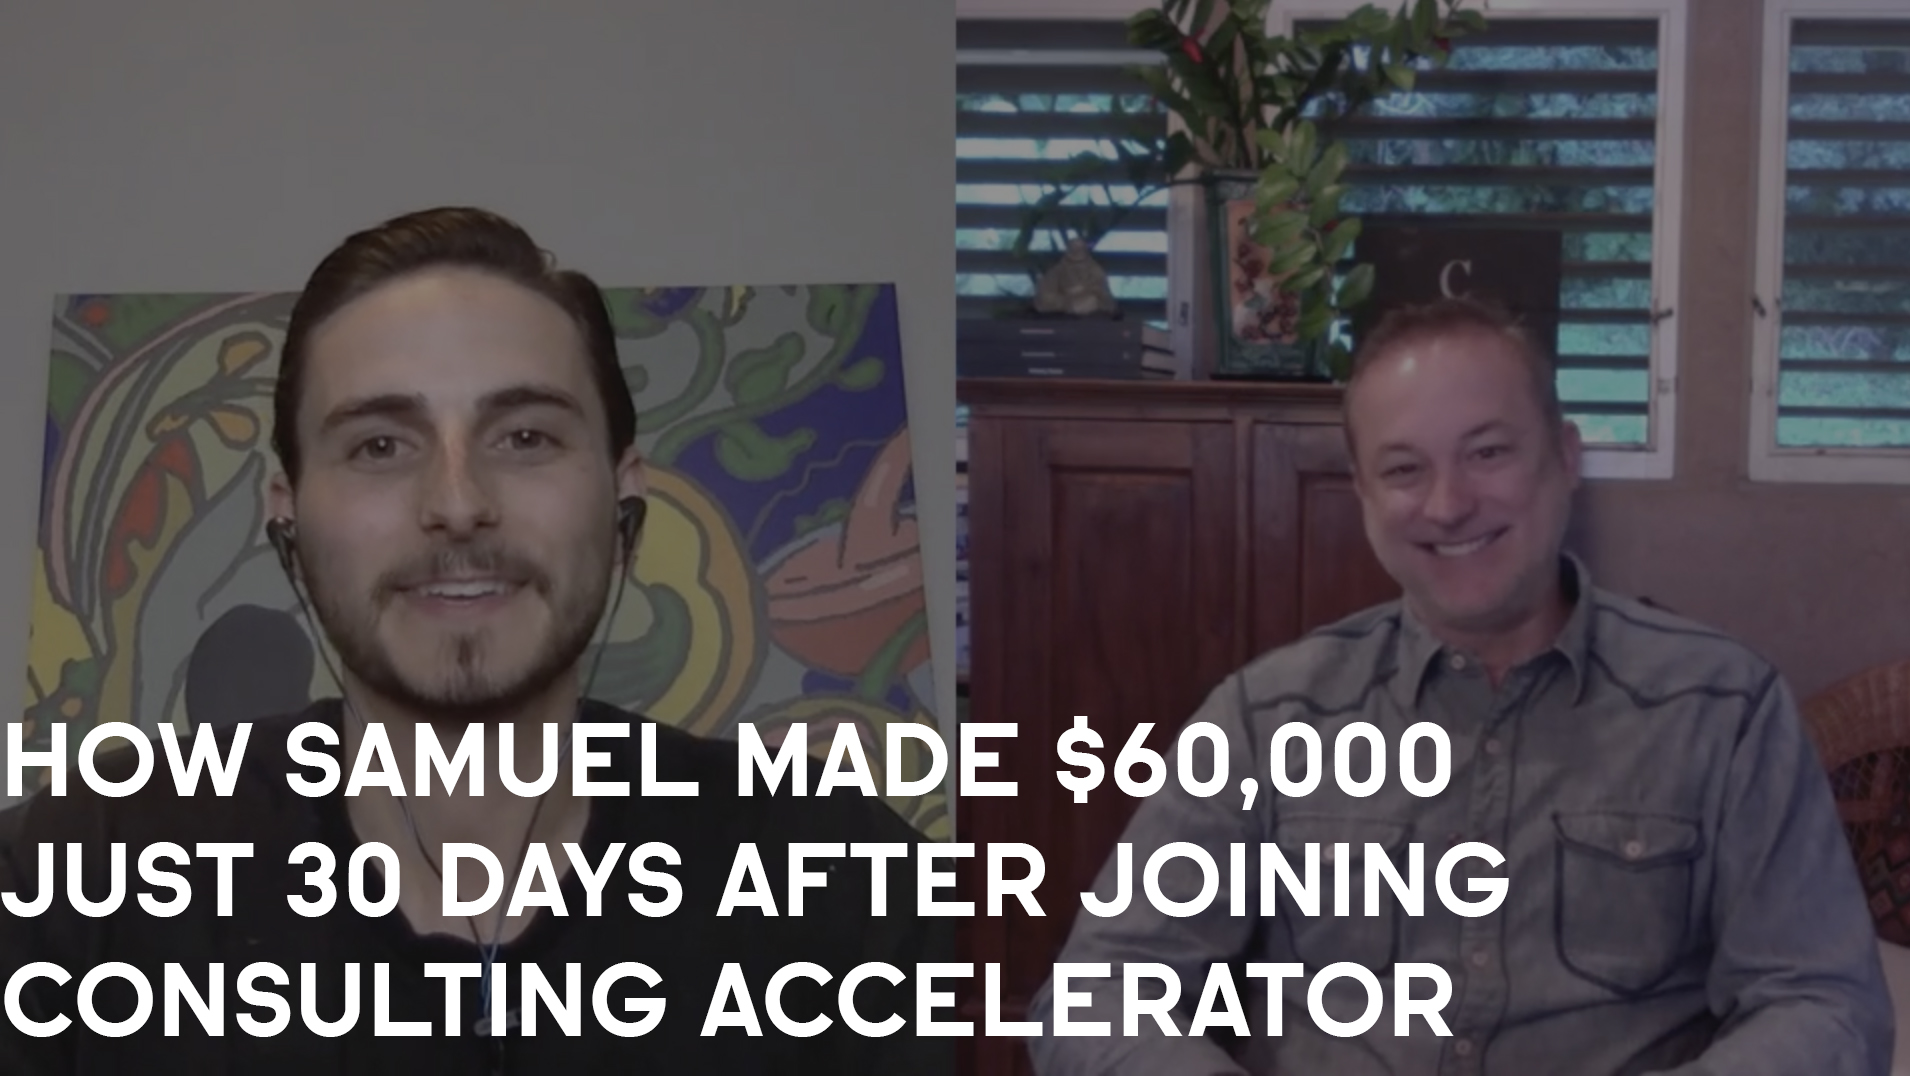 How Samuel Made $60K Just 30 Days After Joining Consulting Accelerator